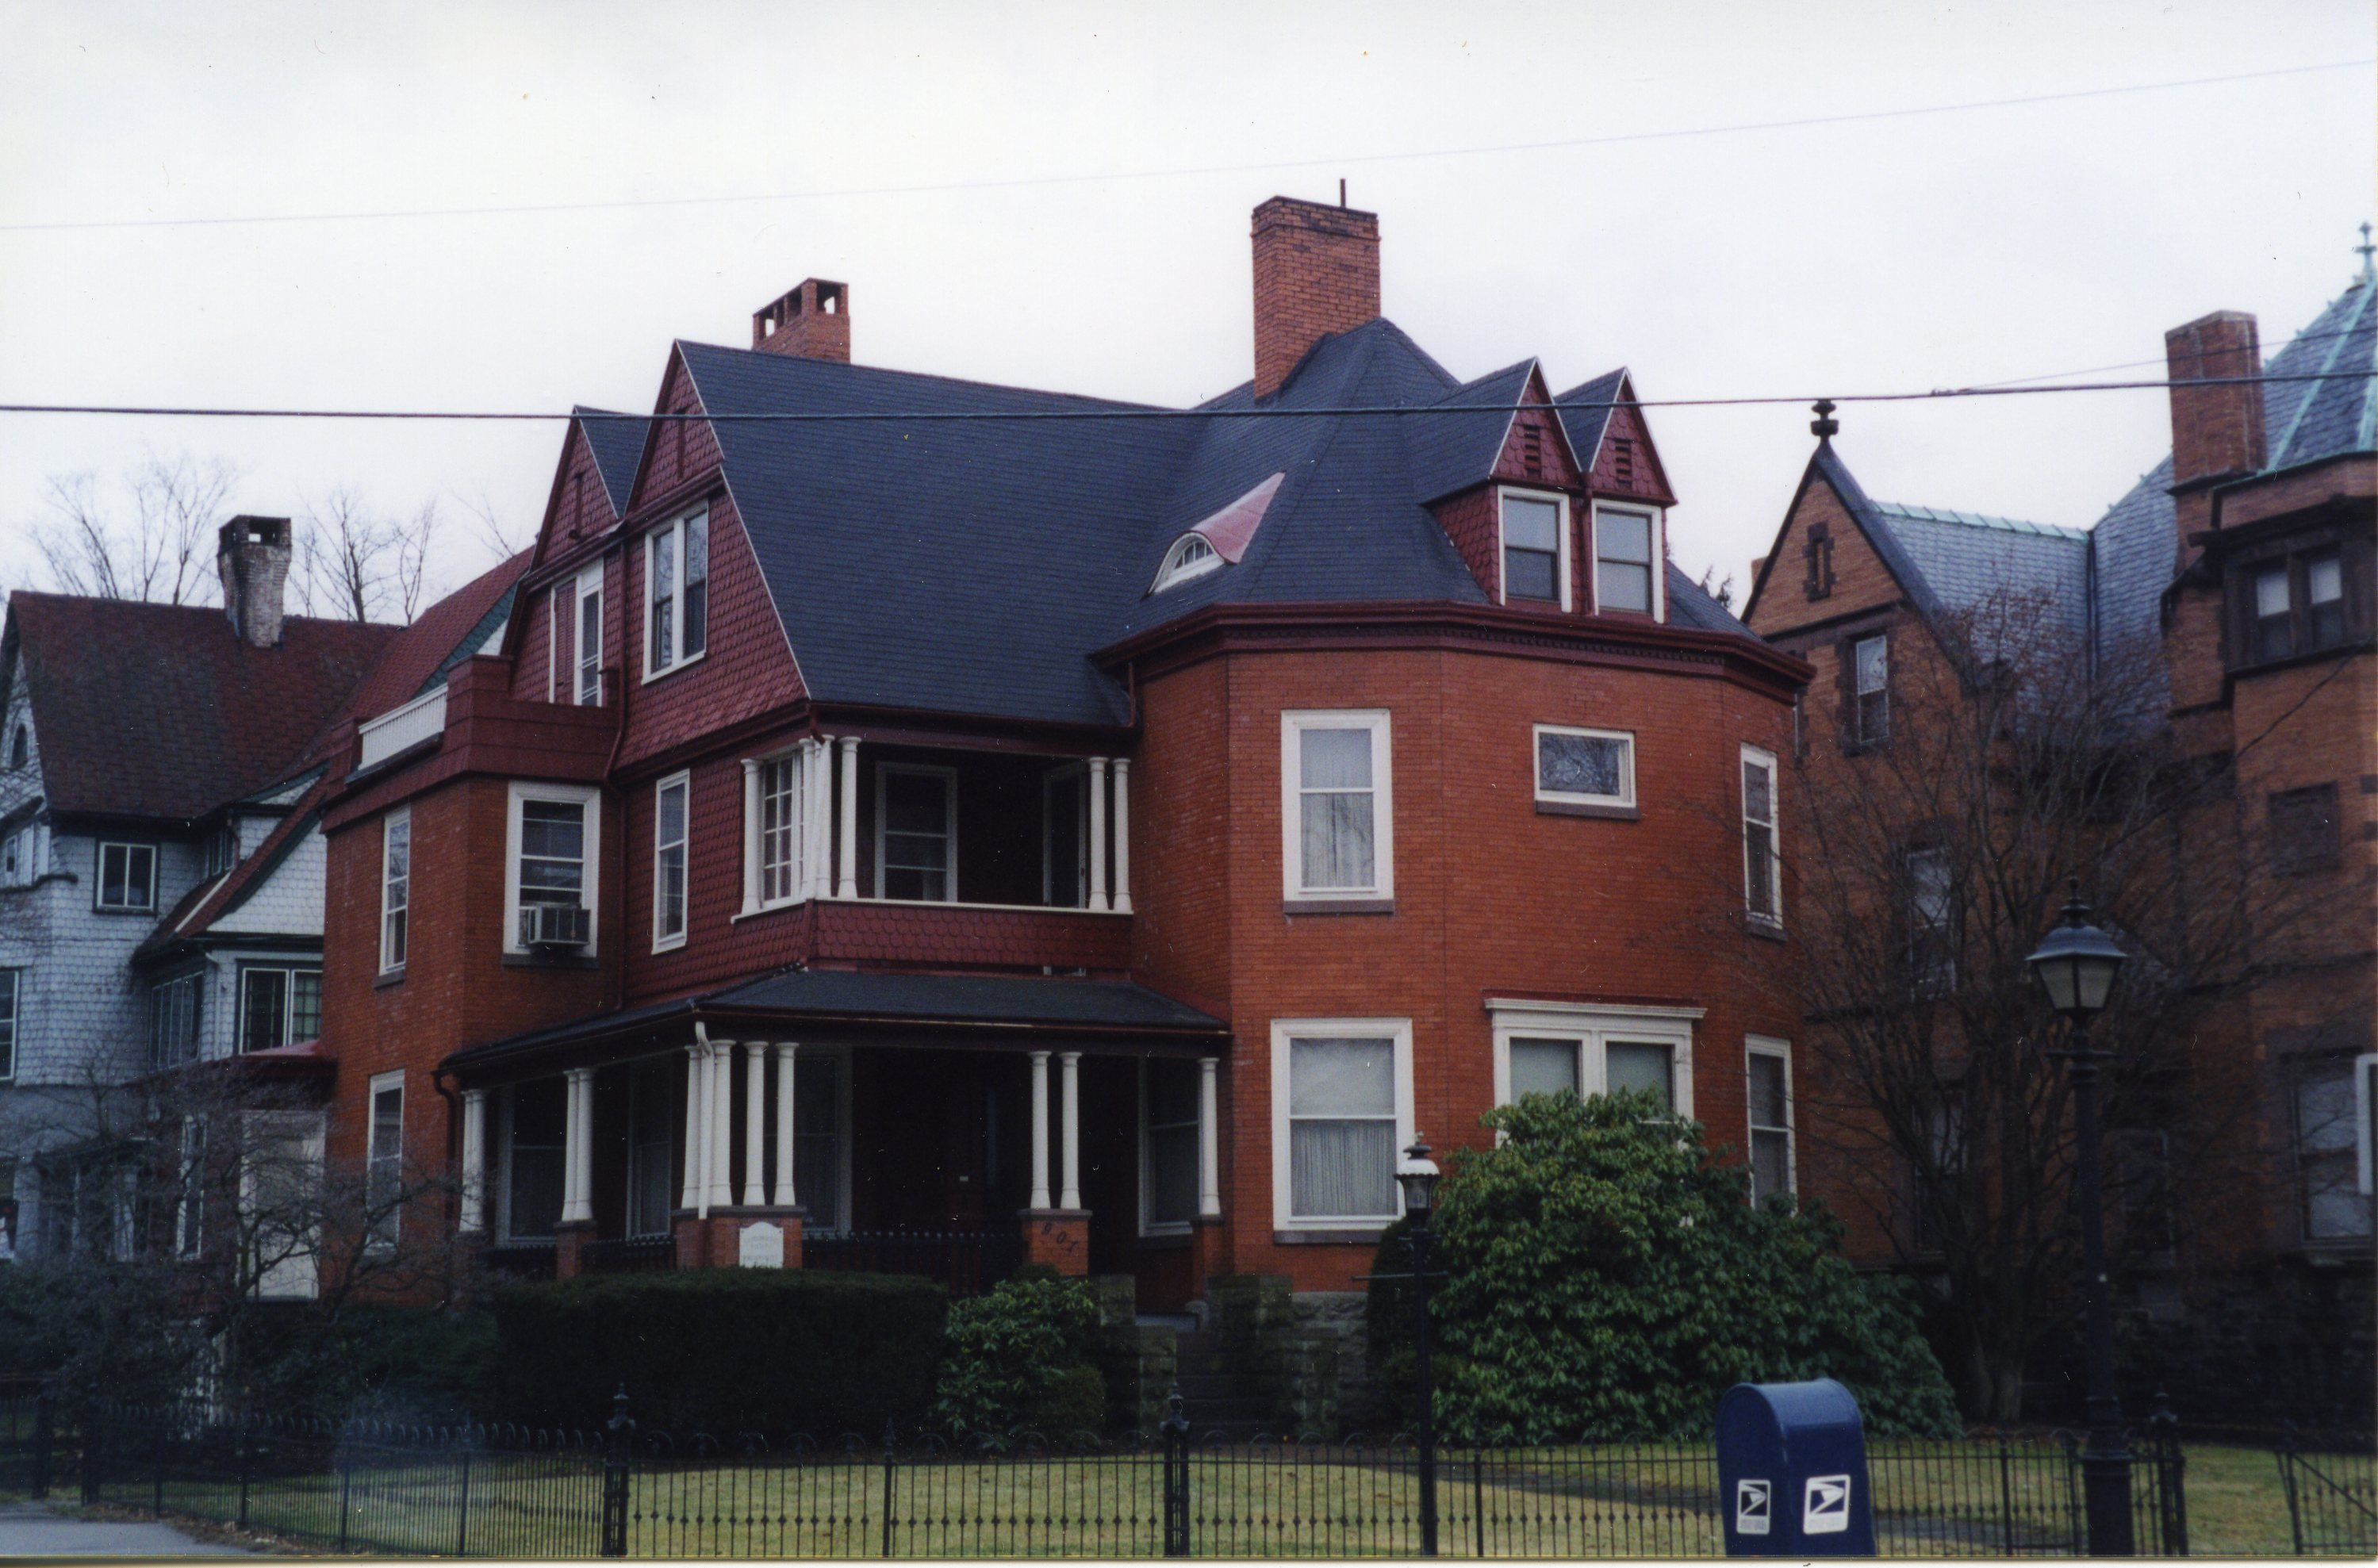 901 from W 4th Street, pre-restoration (2002)